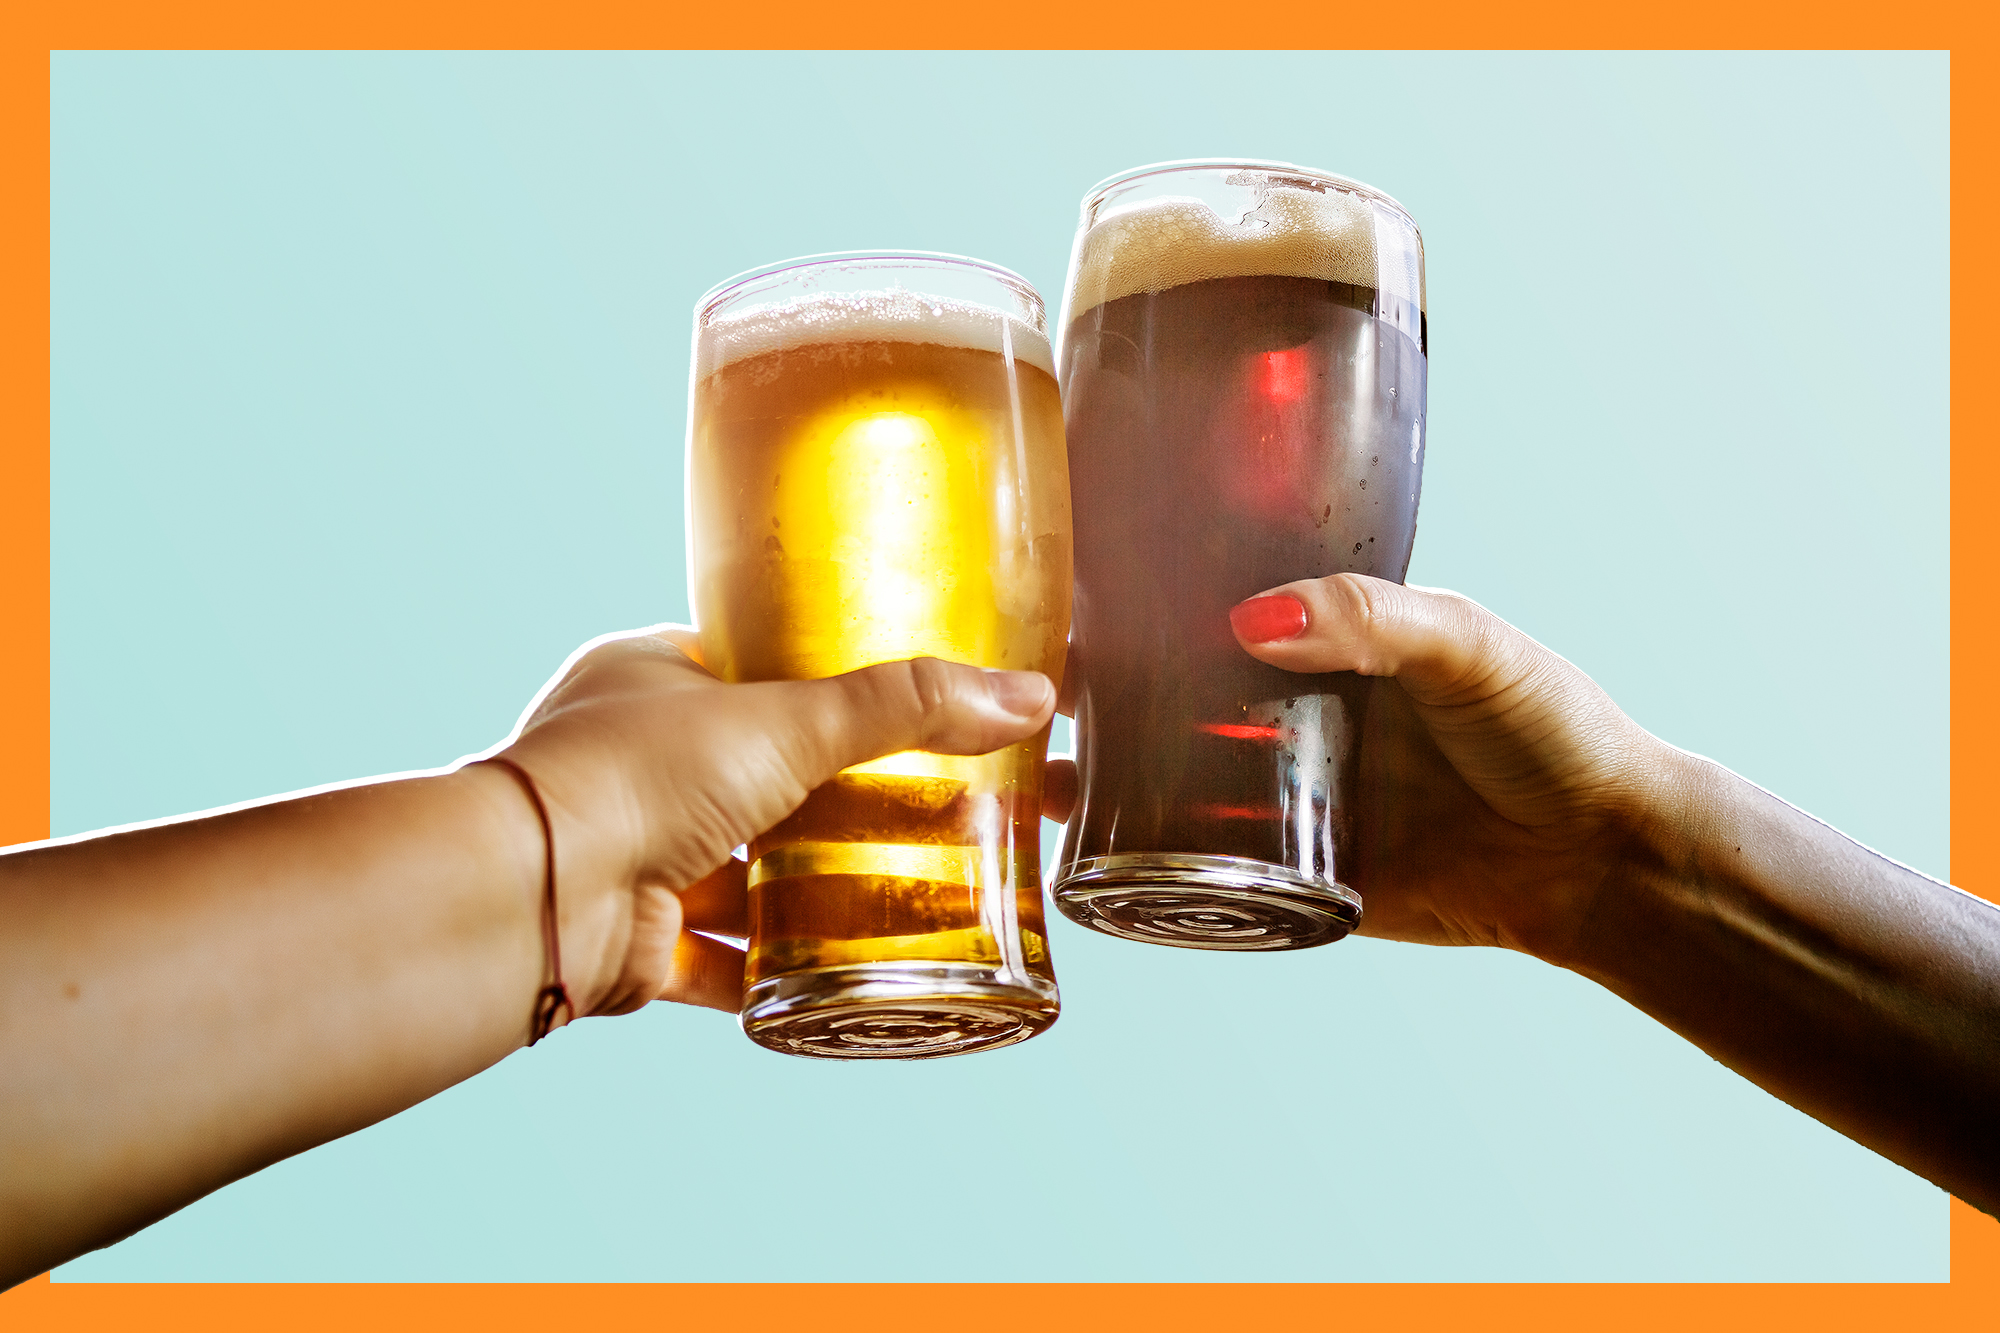 two people clanking beer classes together on a designed background